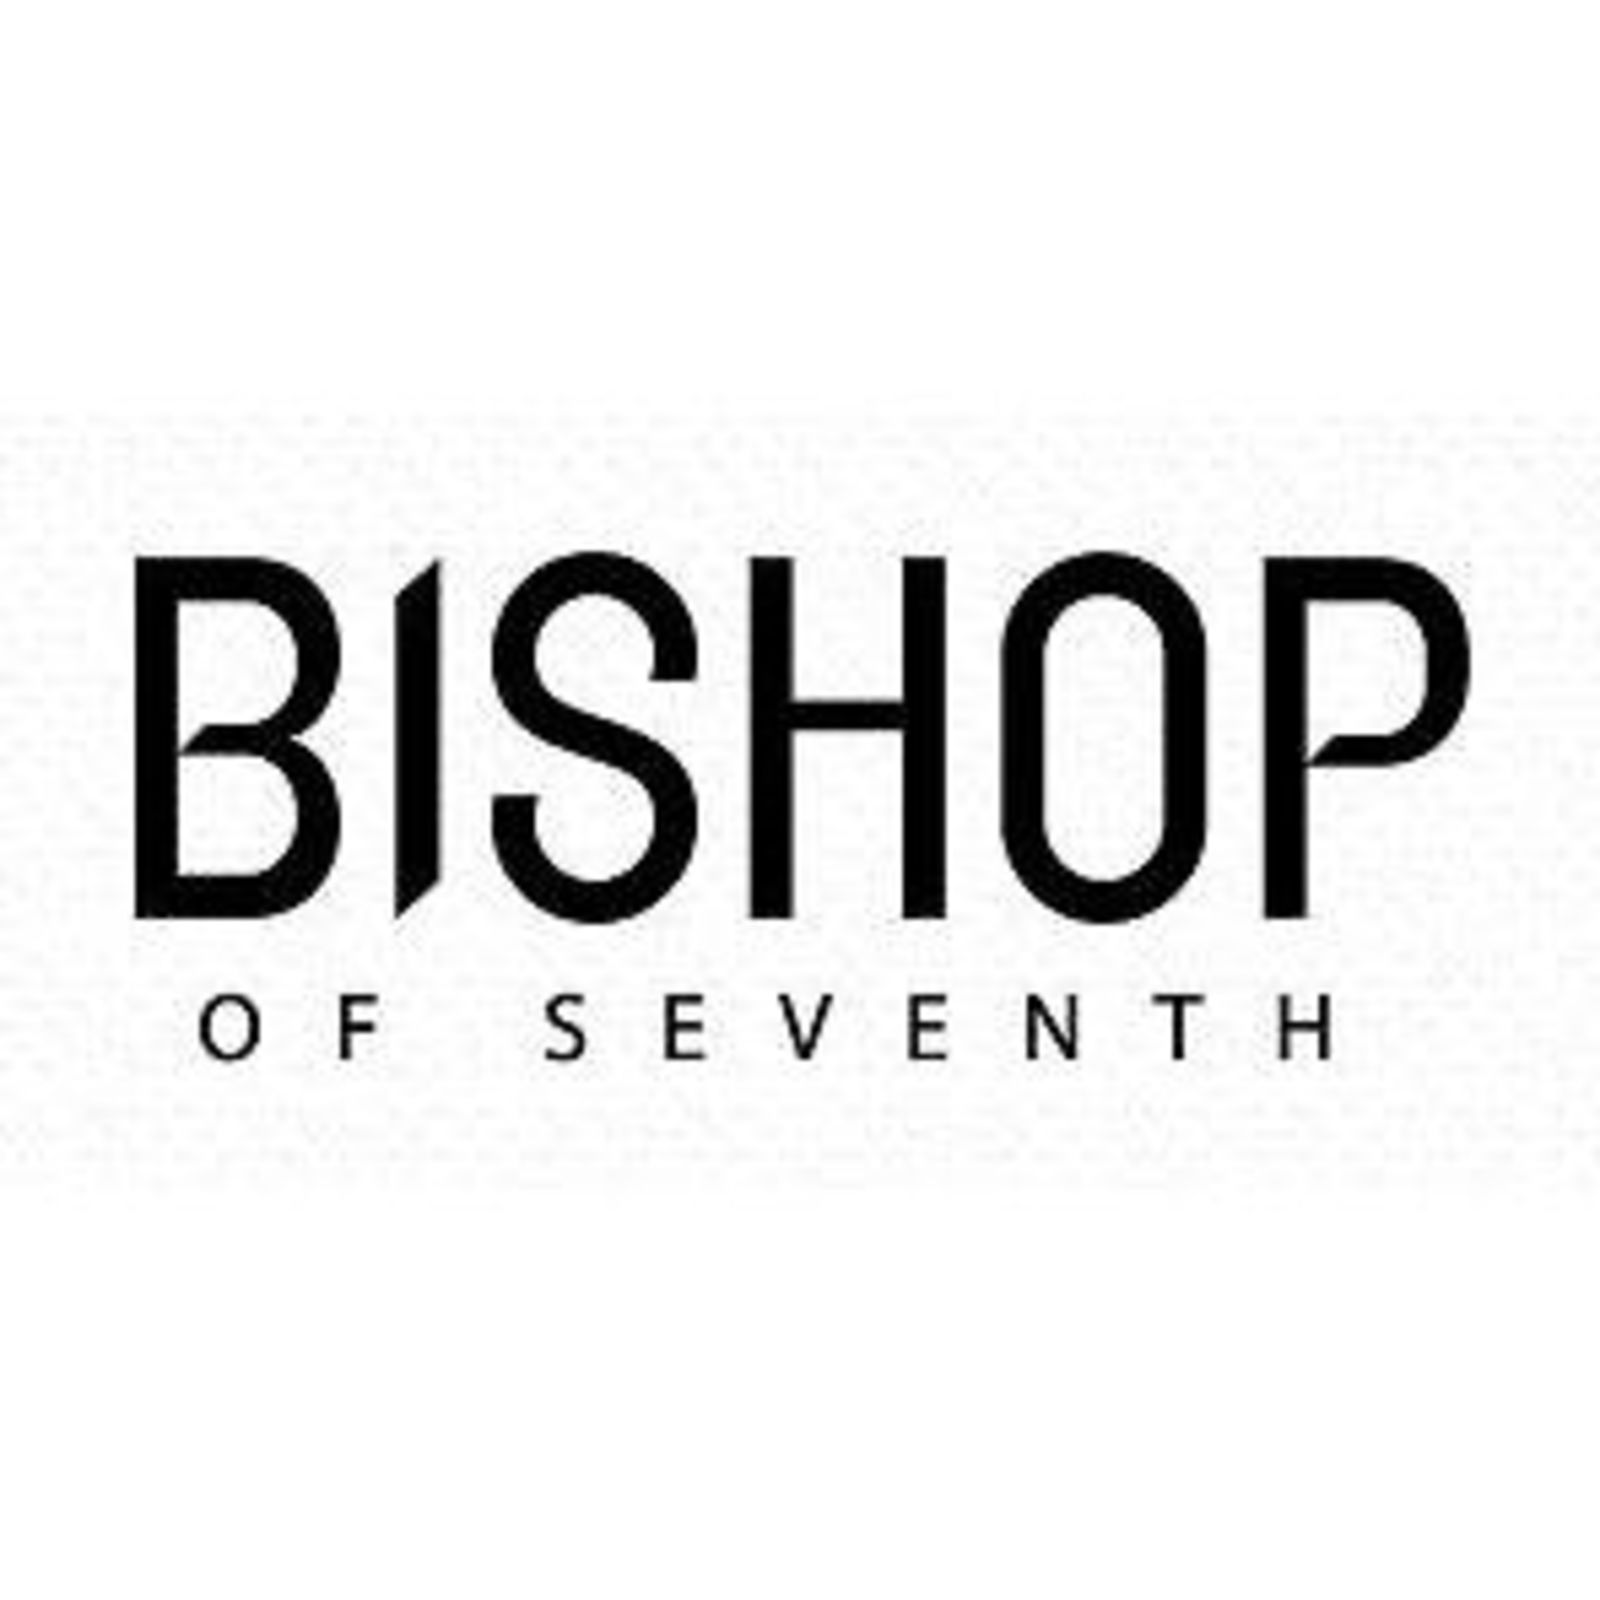 BISHOP of Seventh